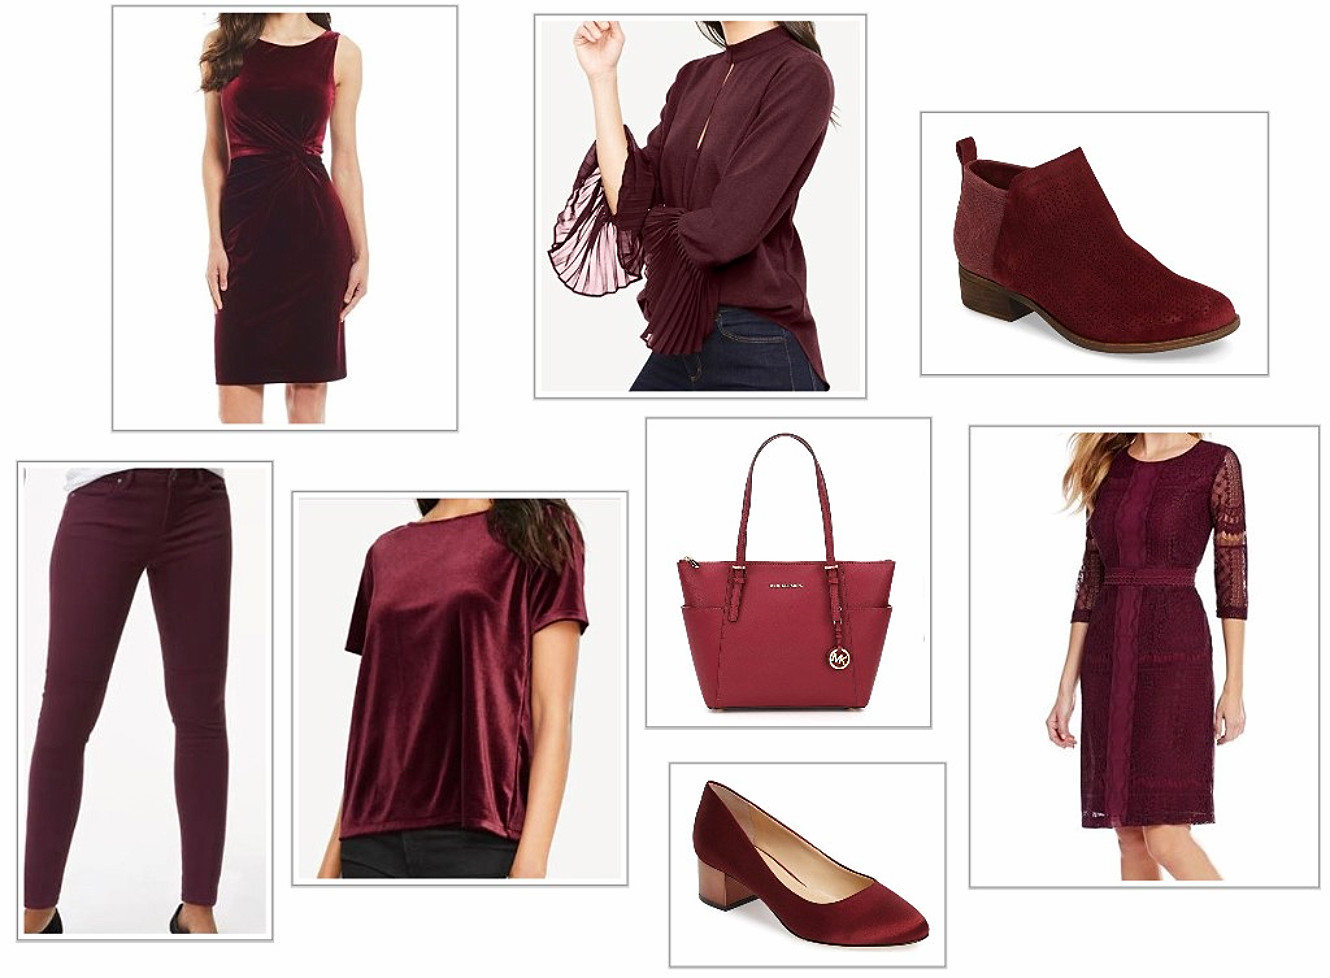 Shirts, Dresses, Shoes, And Handbags In Burgundy